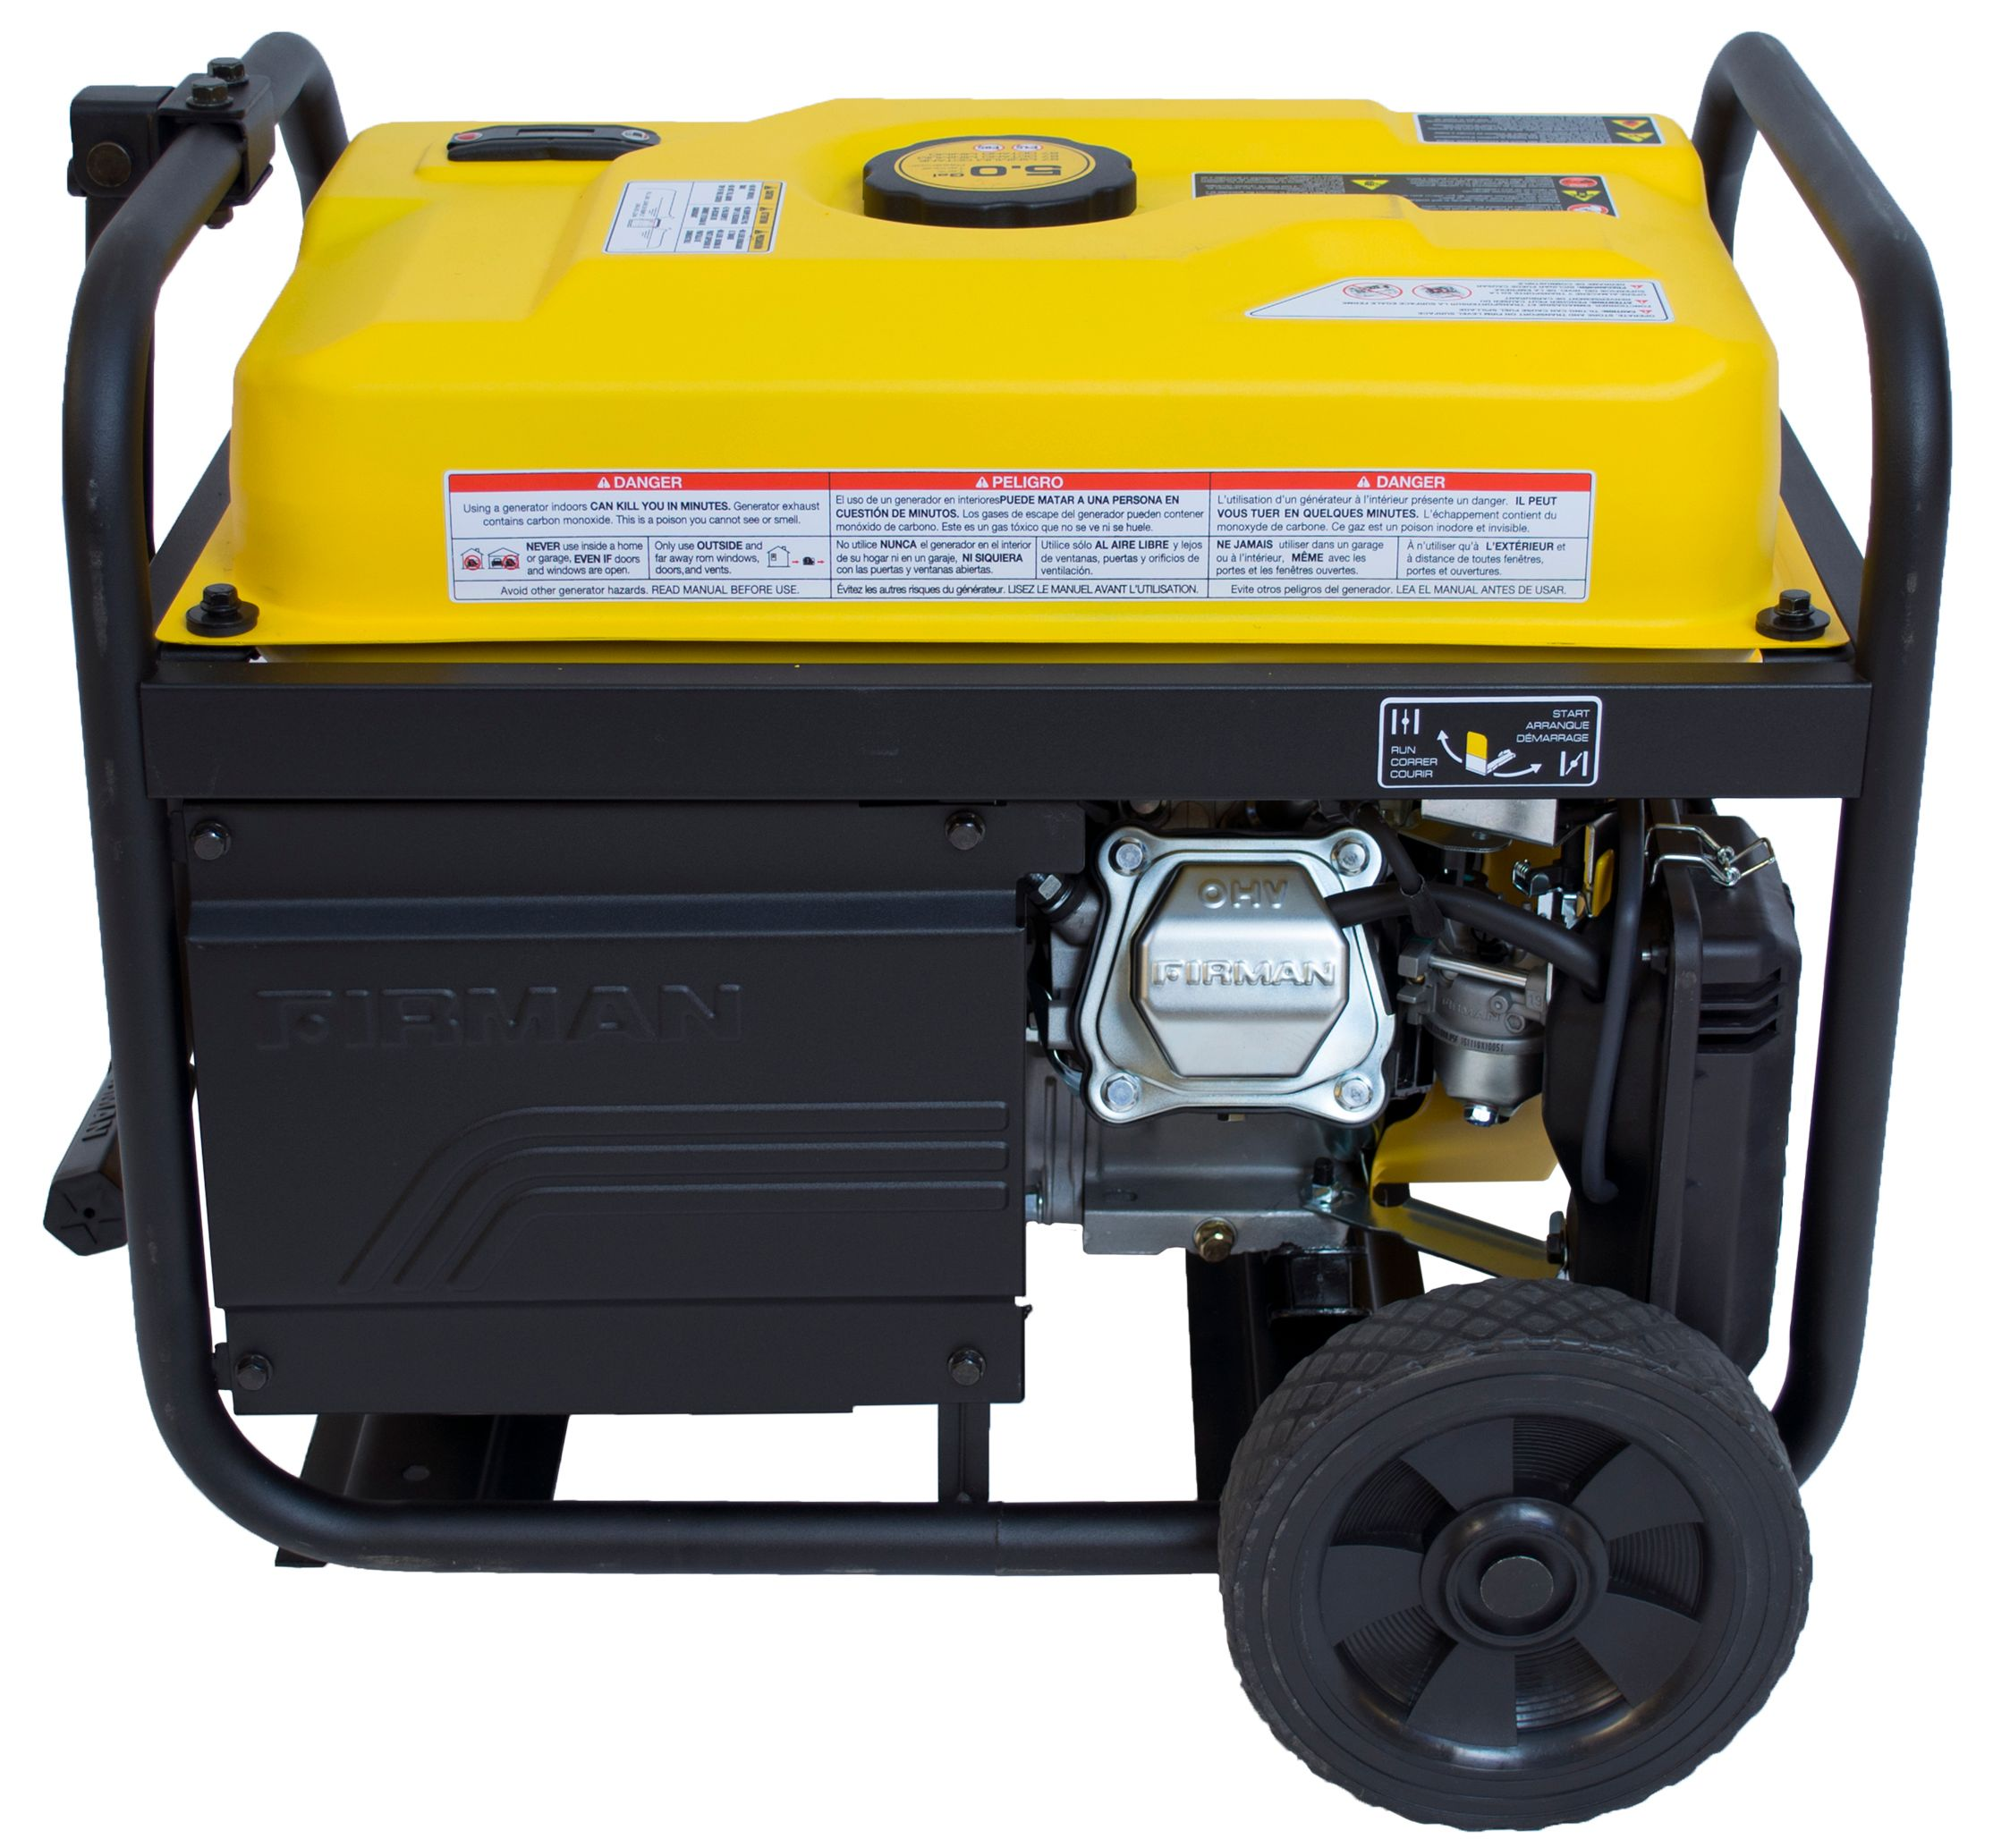 Firman Performance 4550/3650 W Portable Generator with remote